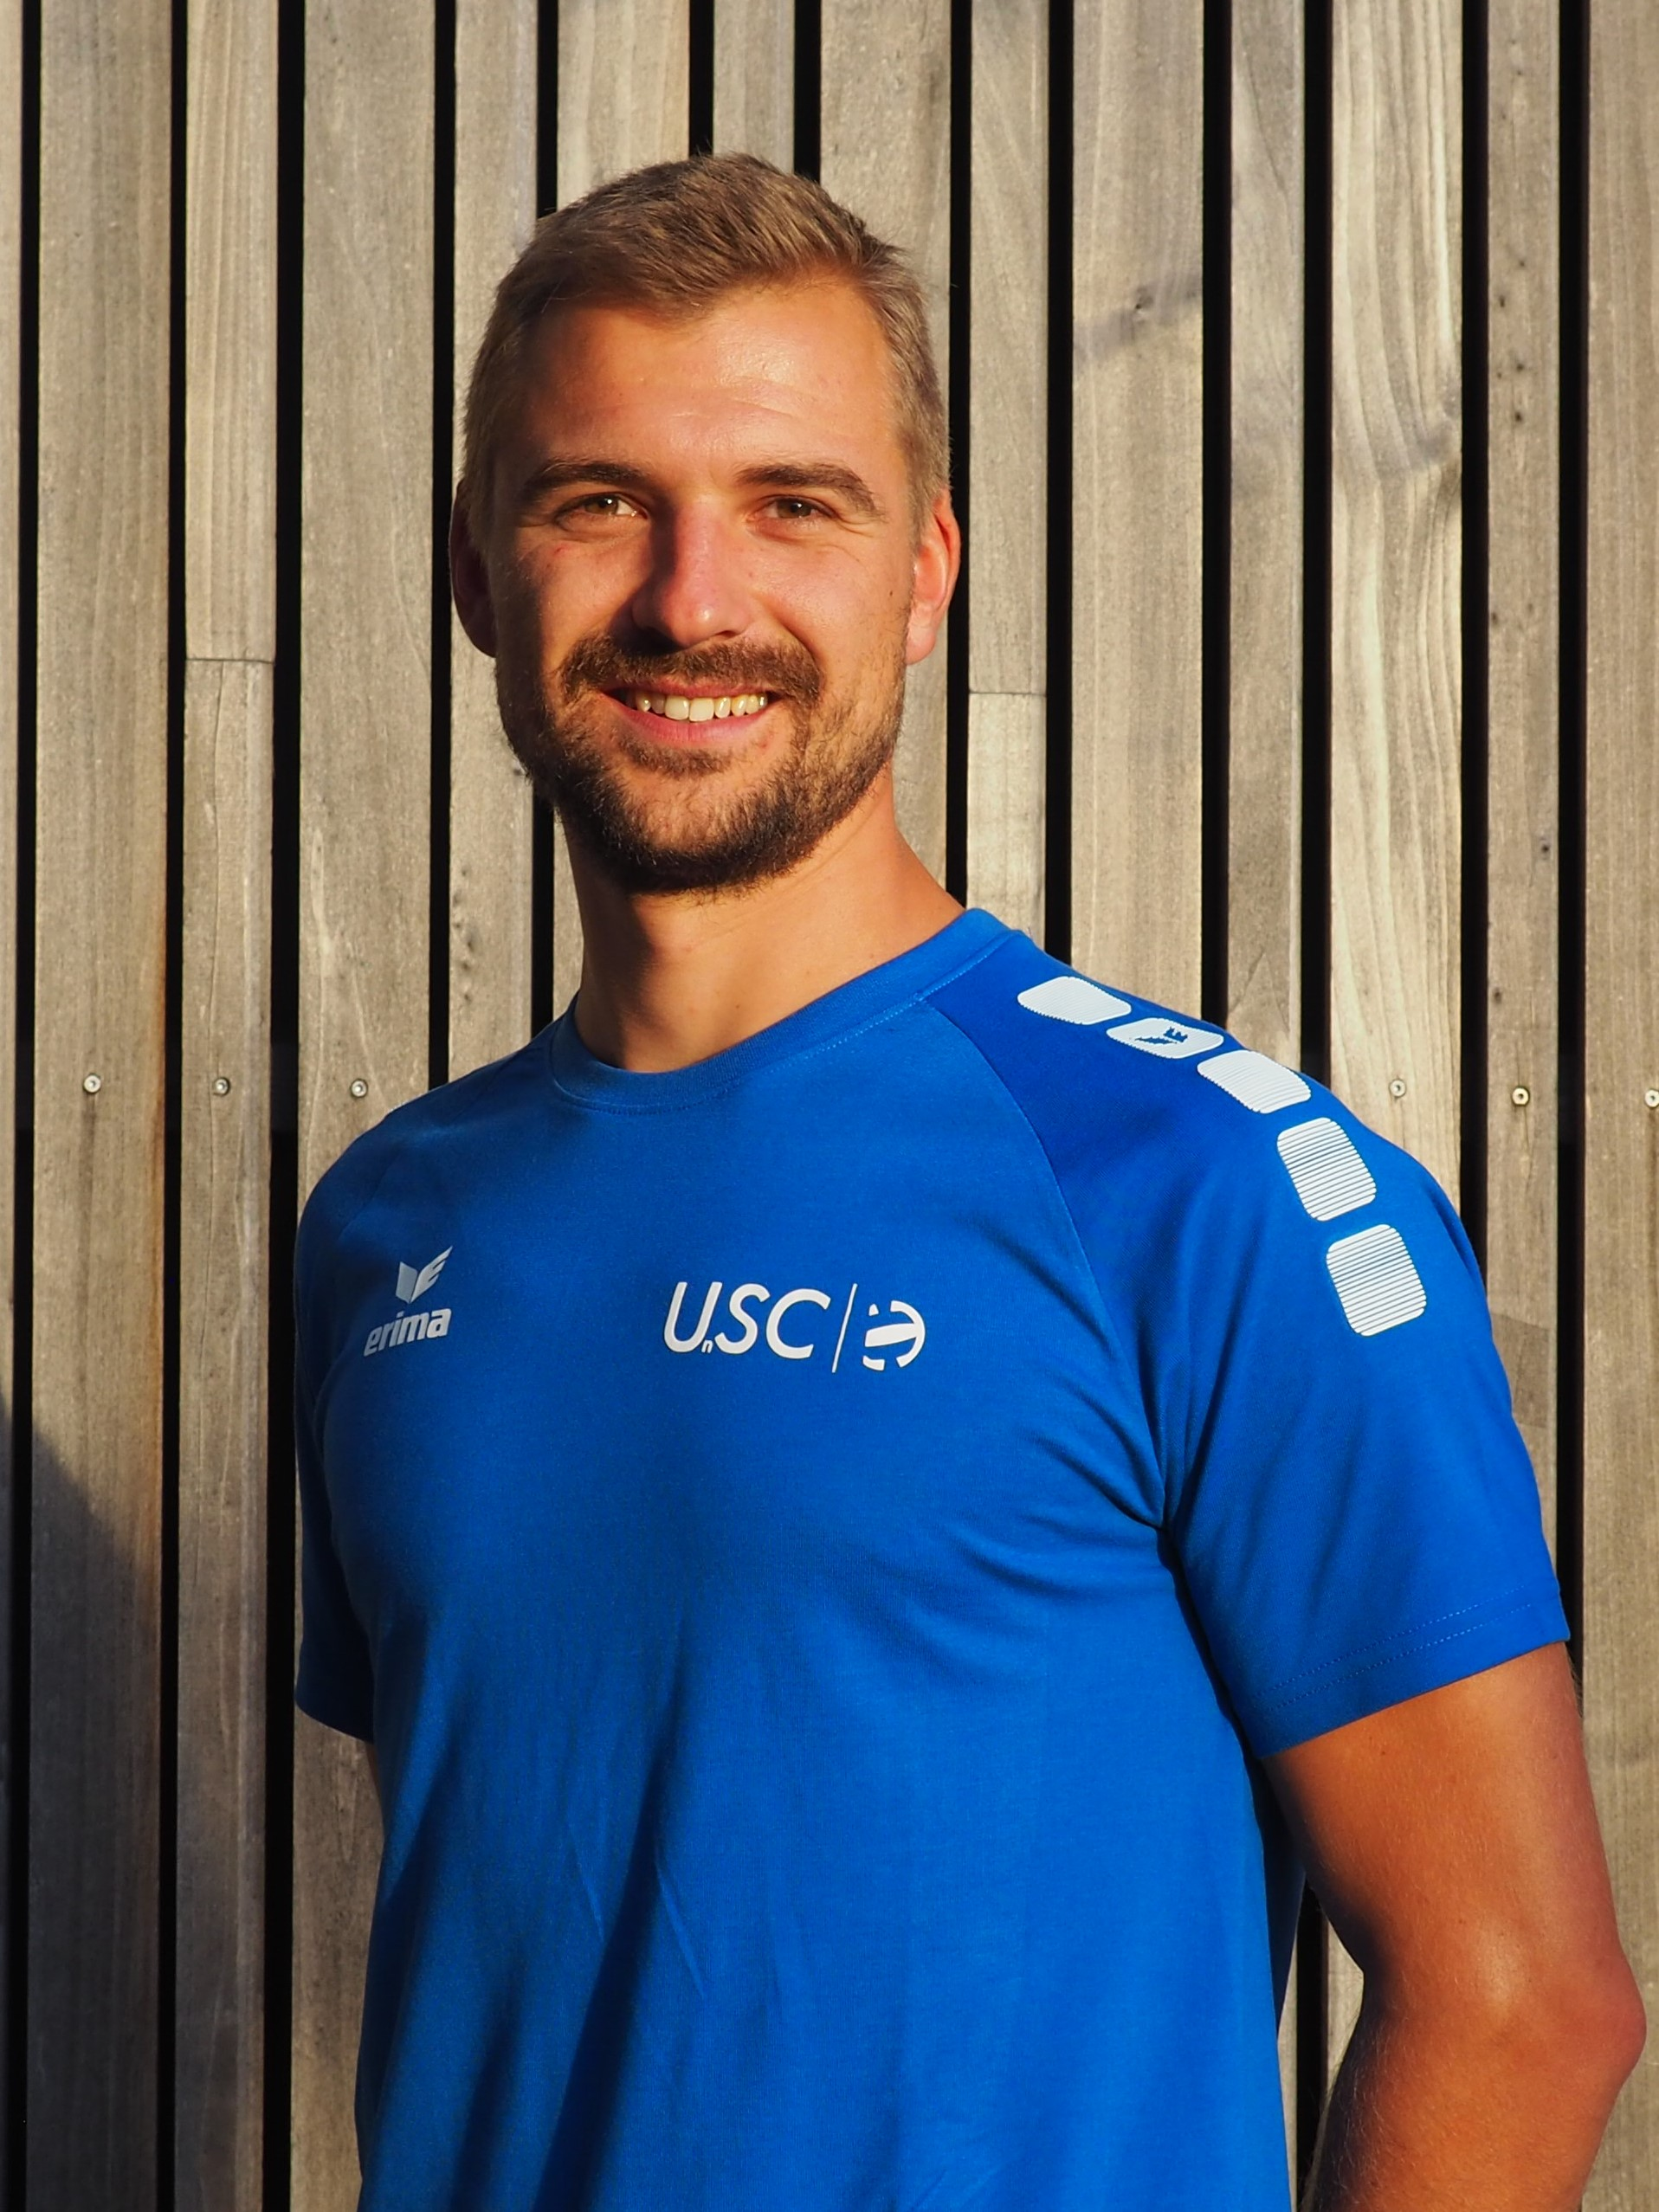 Trainer Kolja Hüther